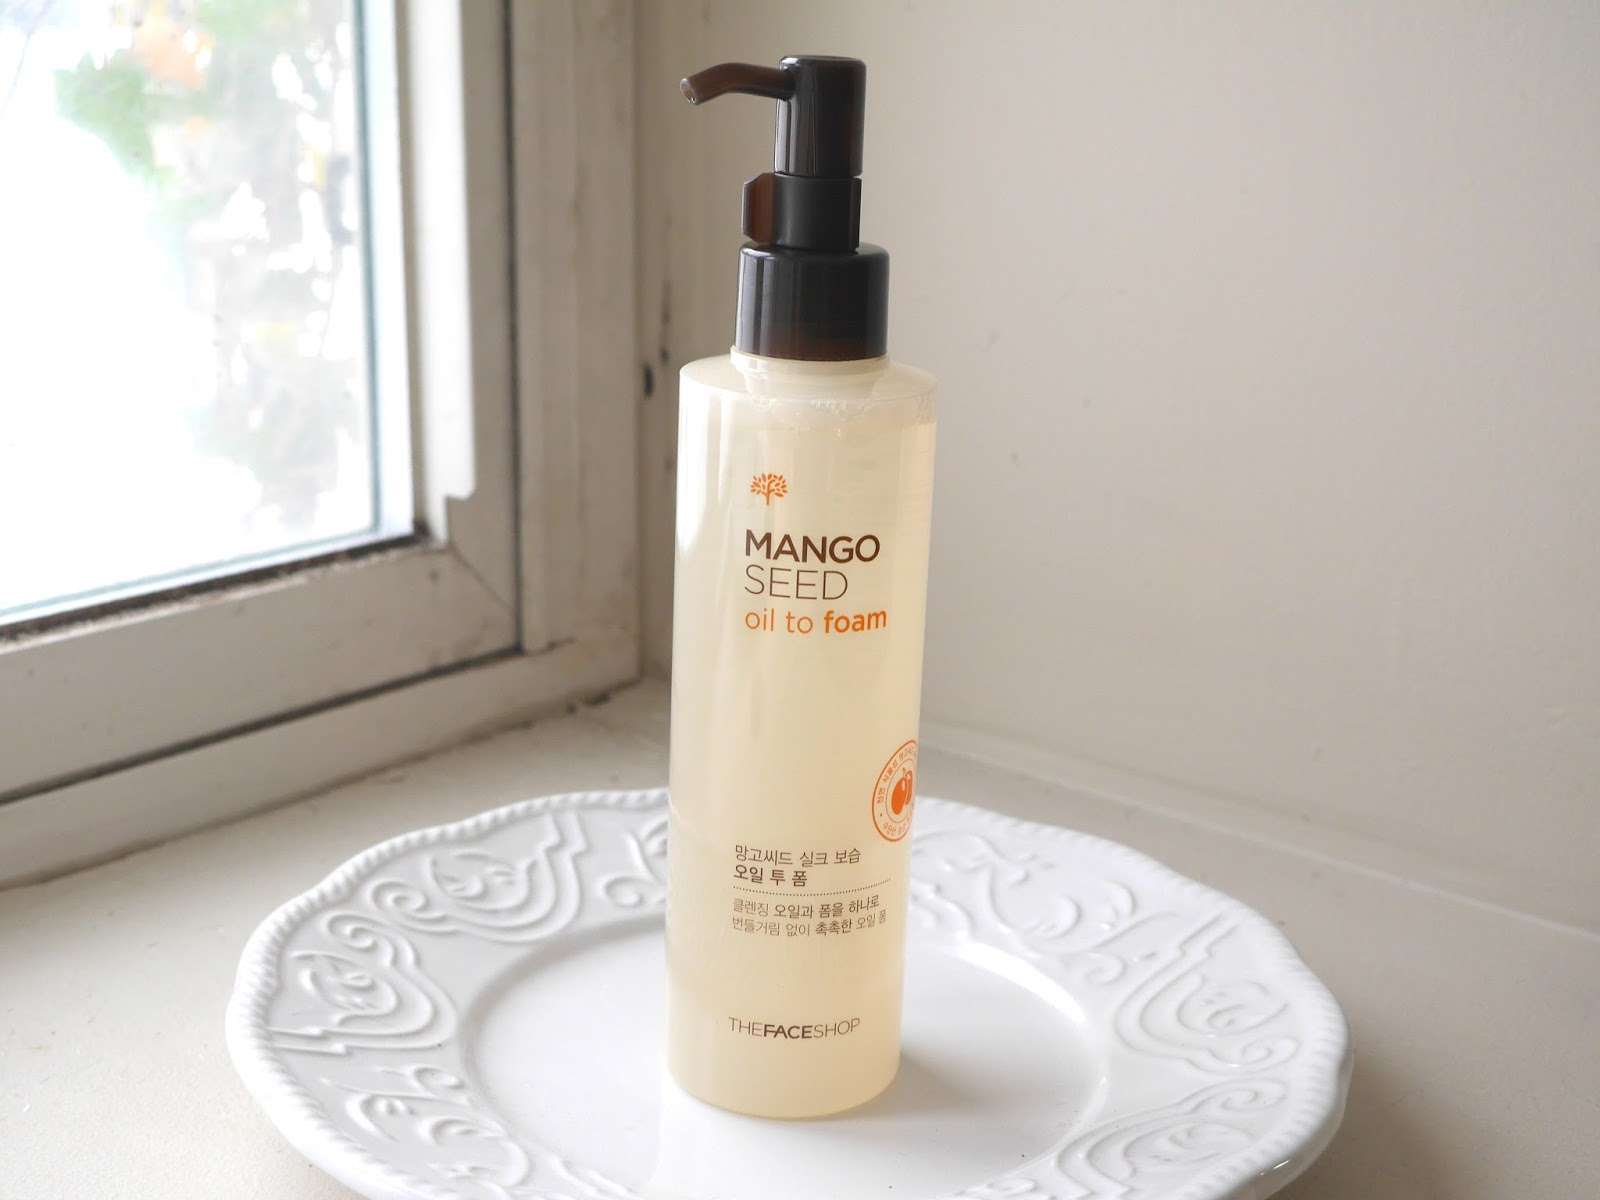 the face shop mango seed oil to foam cleanser review